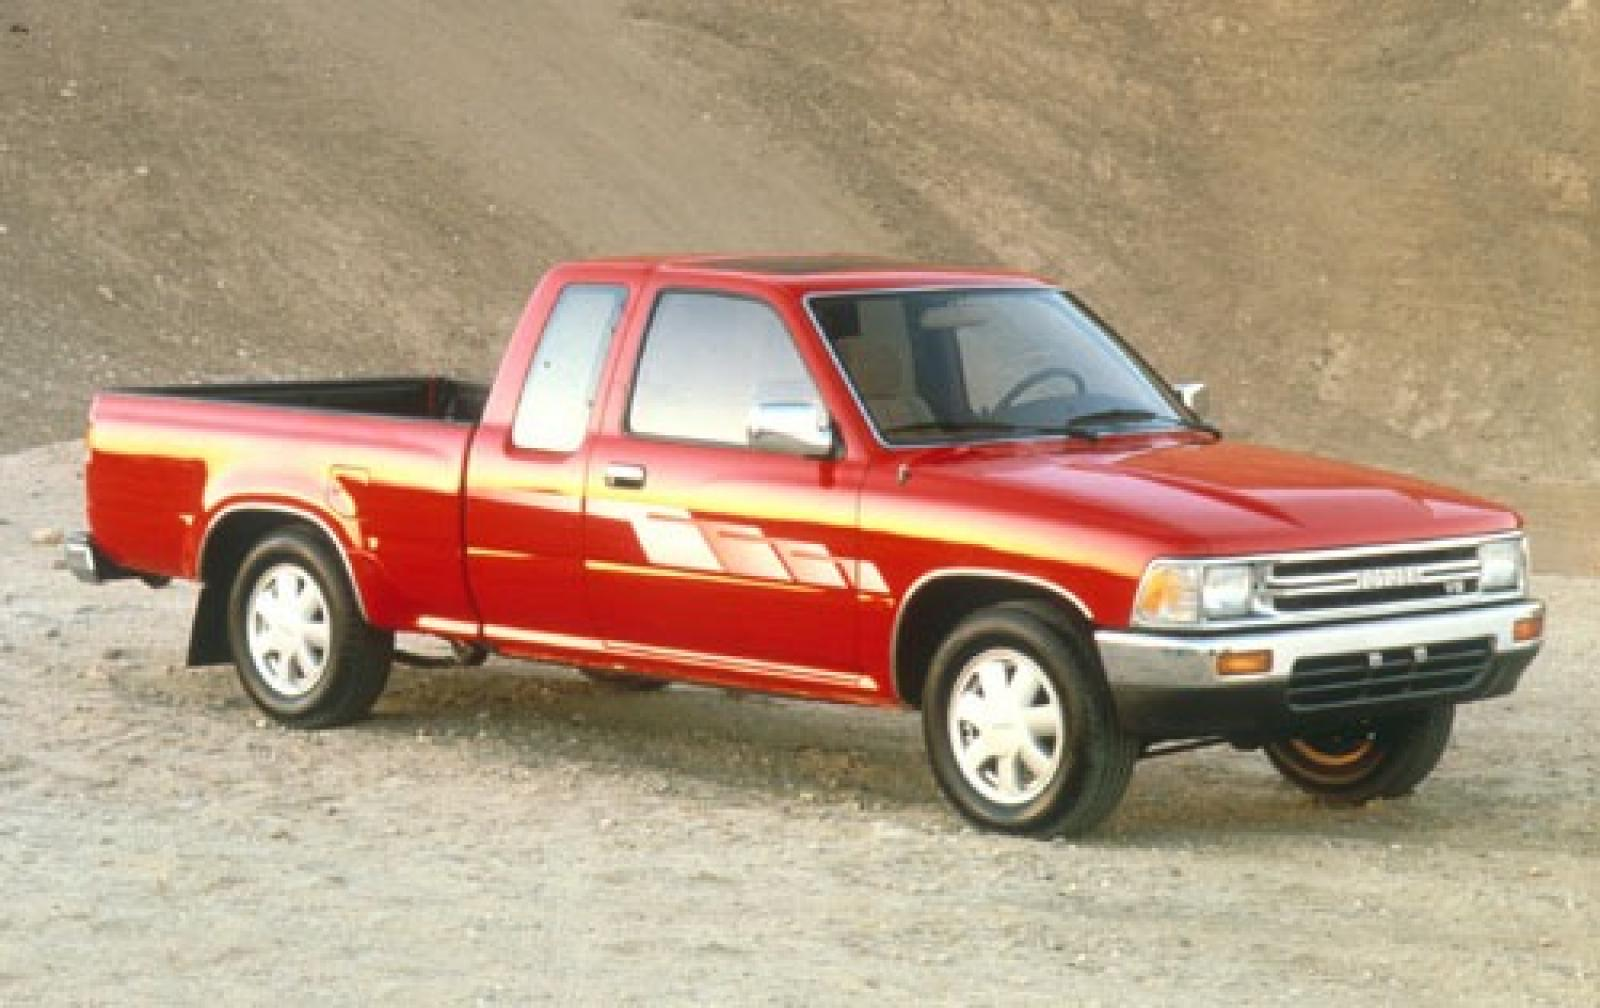 1995 toyota pickup information and photos zombiedrive. Black Bedroom Furniture Sets. Home Design Ideas